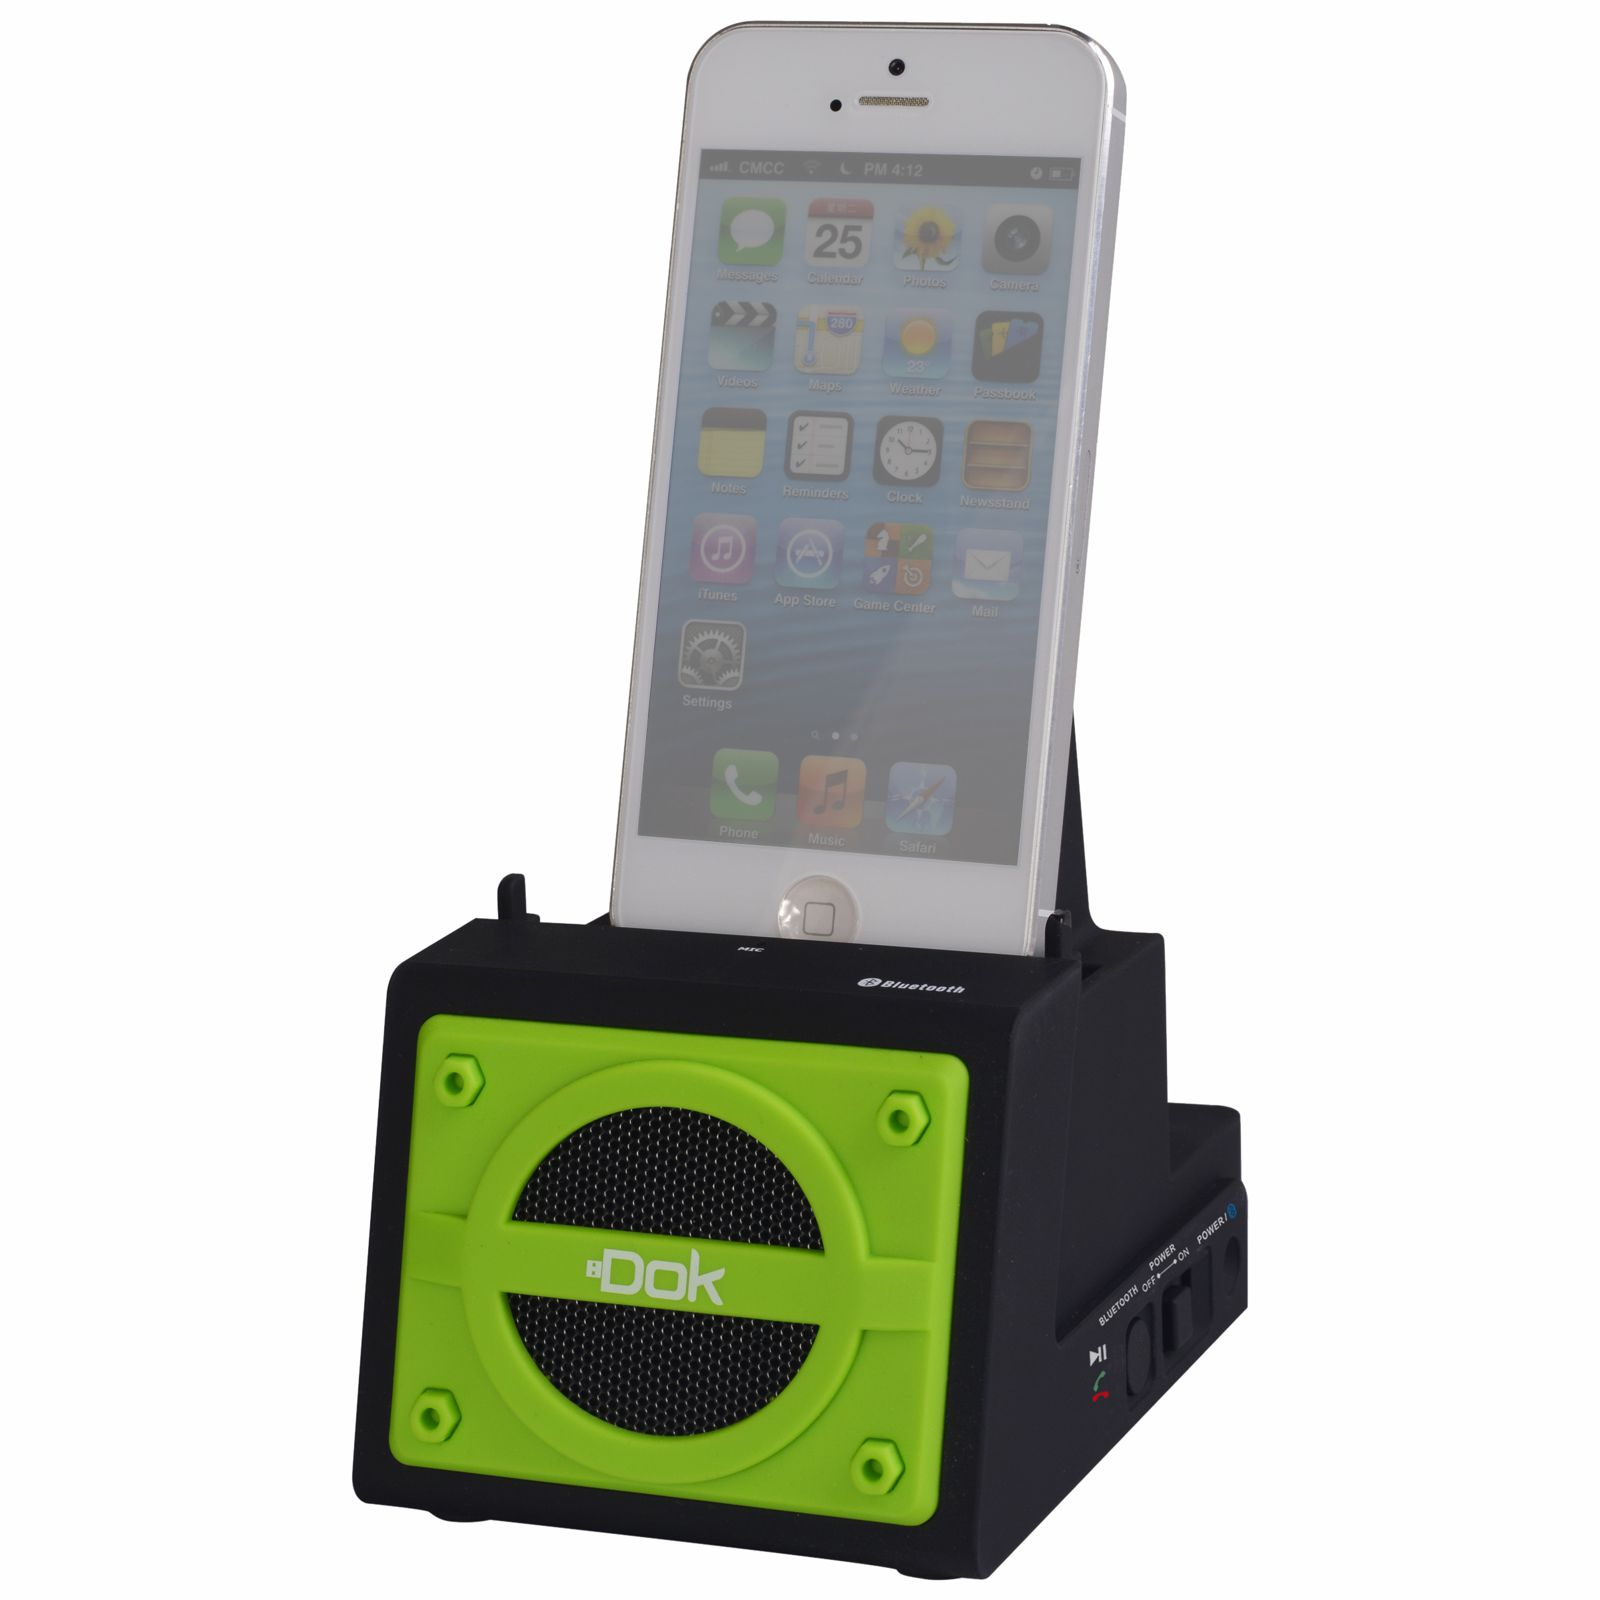 CR13GN - 2 Port Smart Phone Charger with Bluetooth Speaker, Speaker Phone, Rechargeable Battery (Green Face)